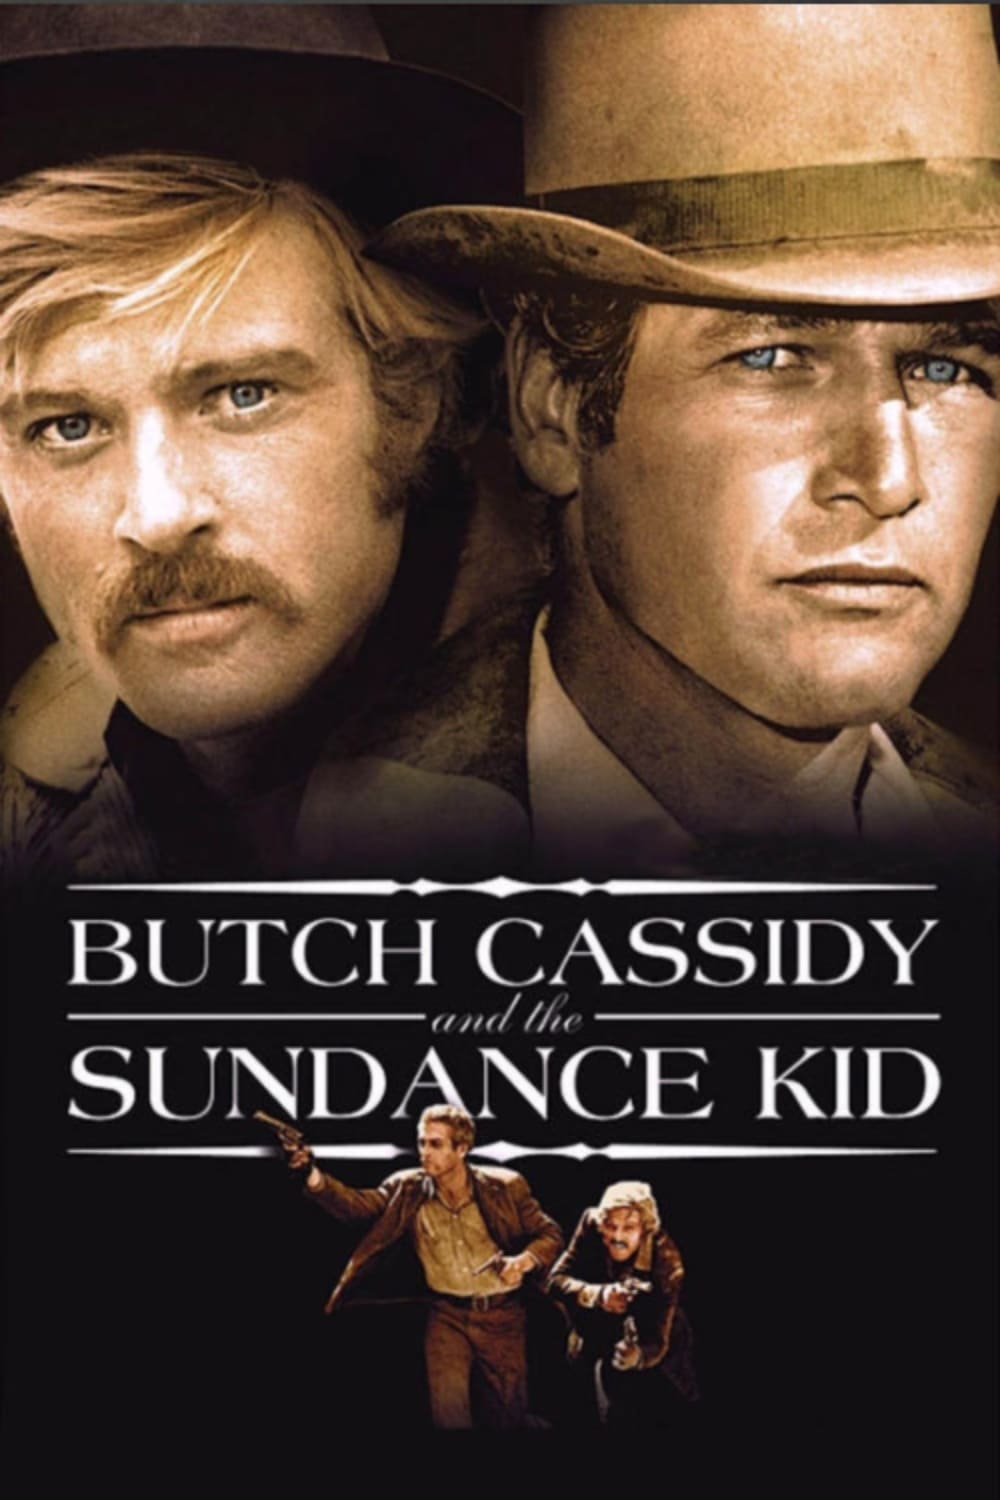 Butch Cassidy and the Sundance Kid - the First Ten Minutes - thescriptblog.com